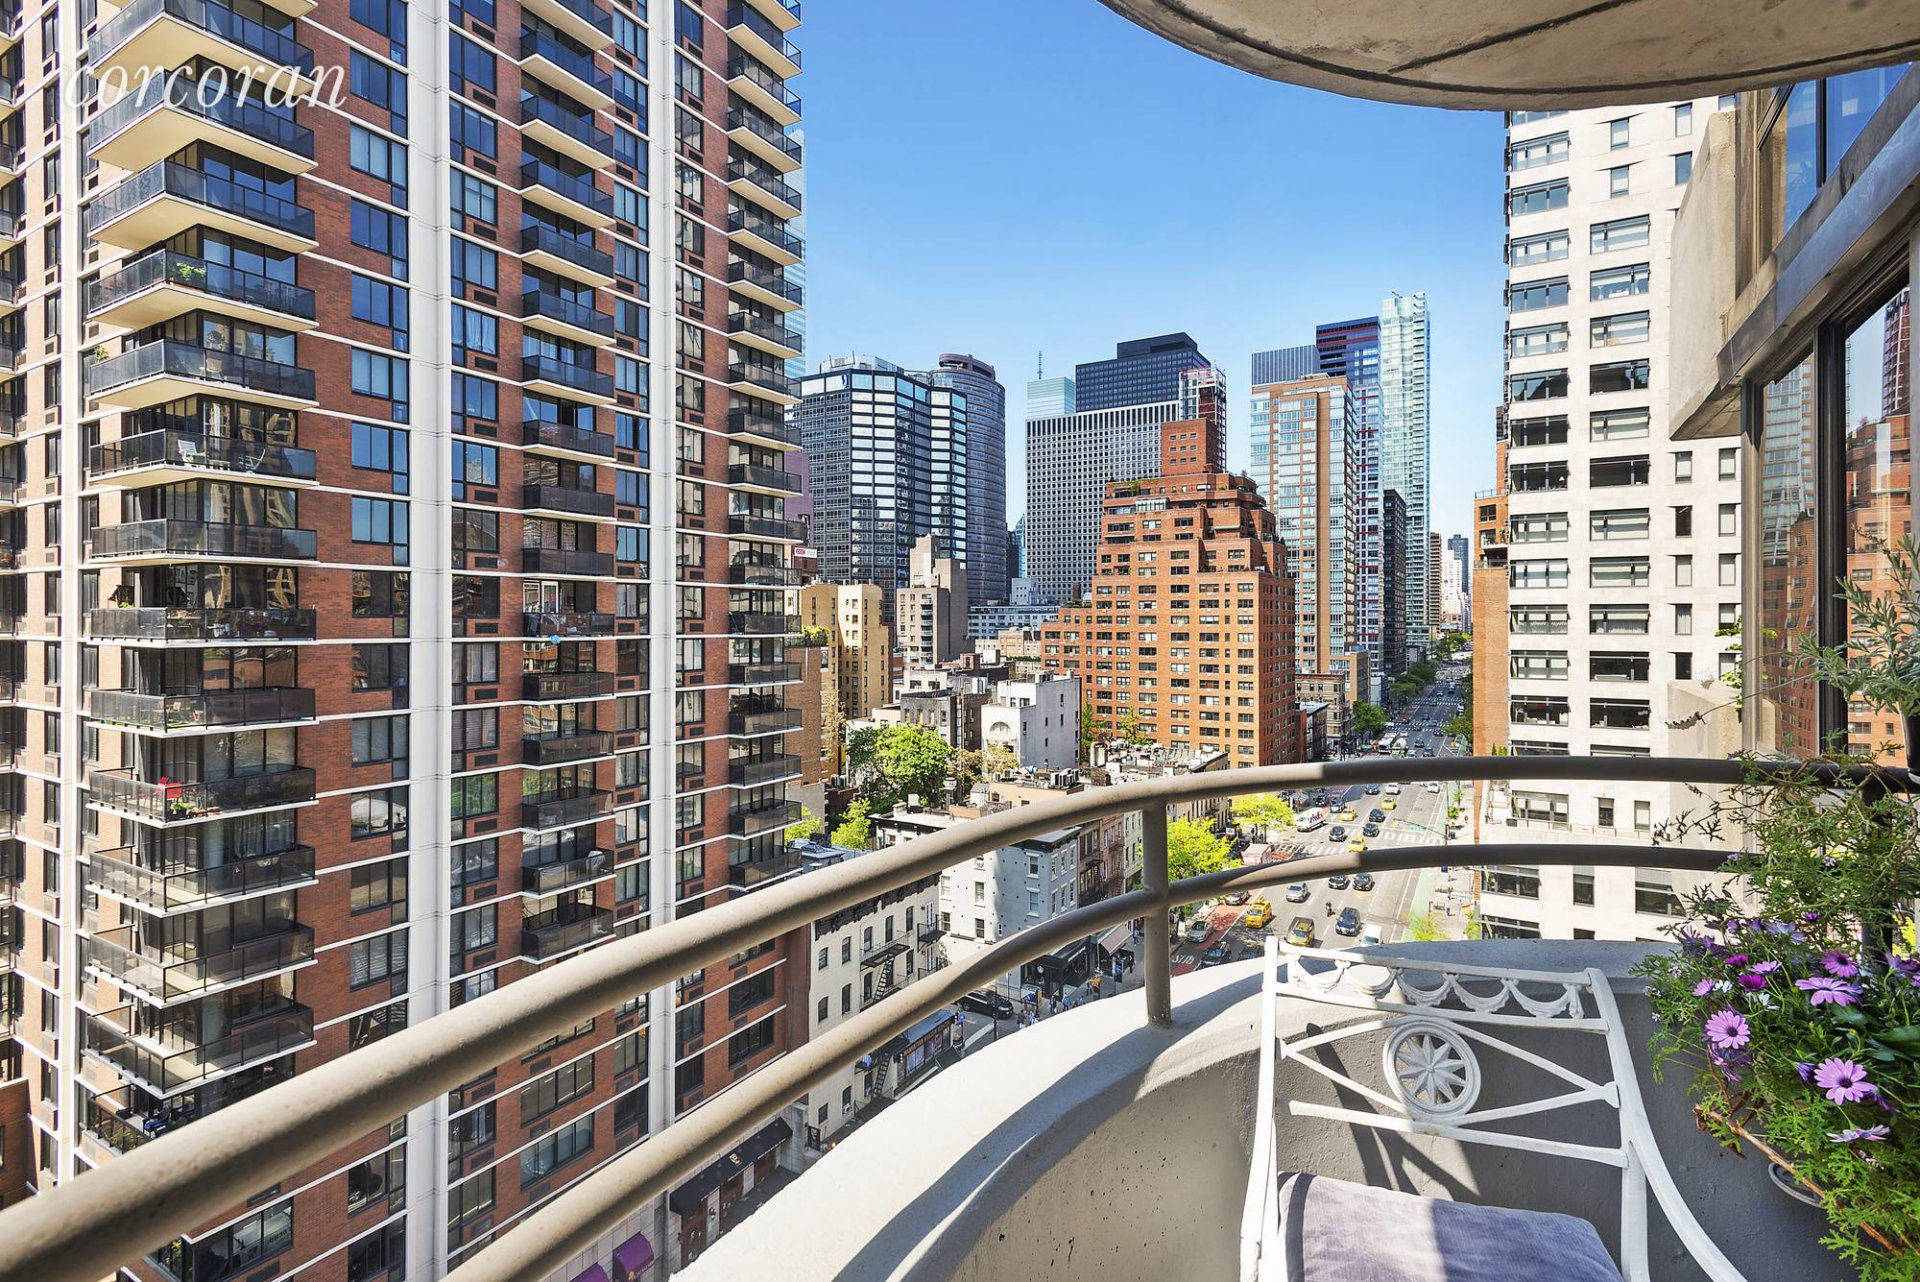 Annonce Vente Appartement New York (10022) ref:5745878